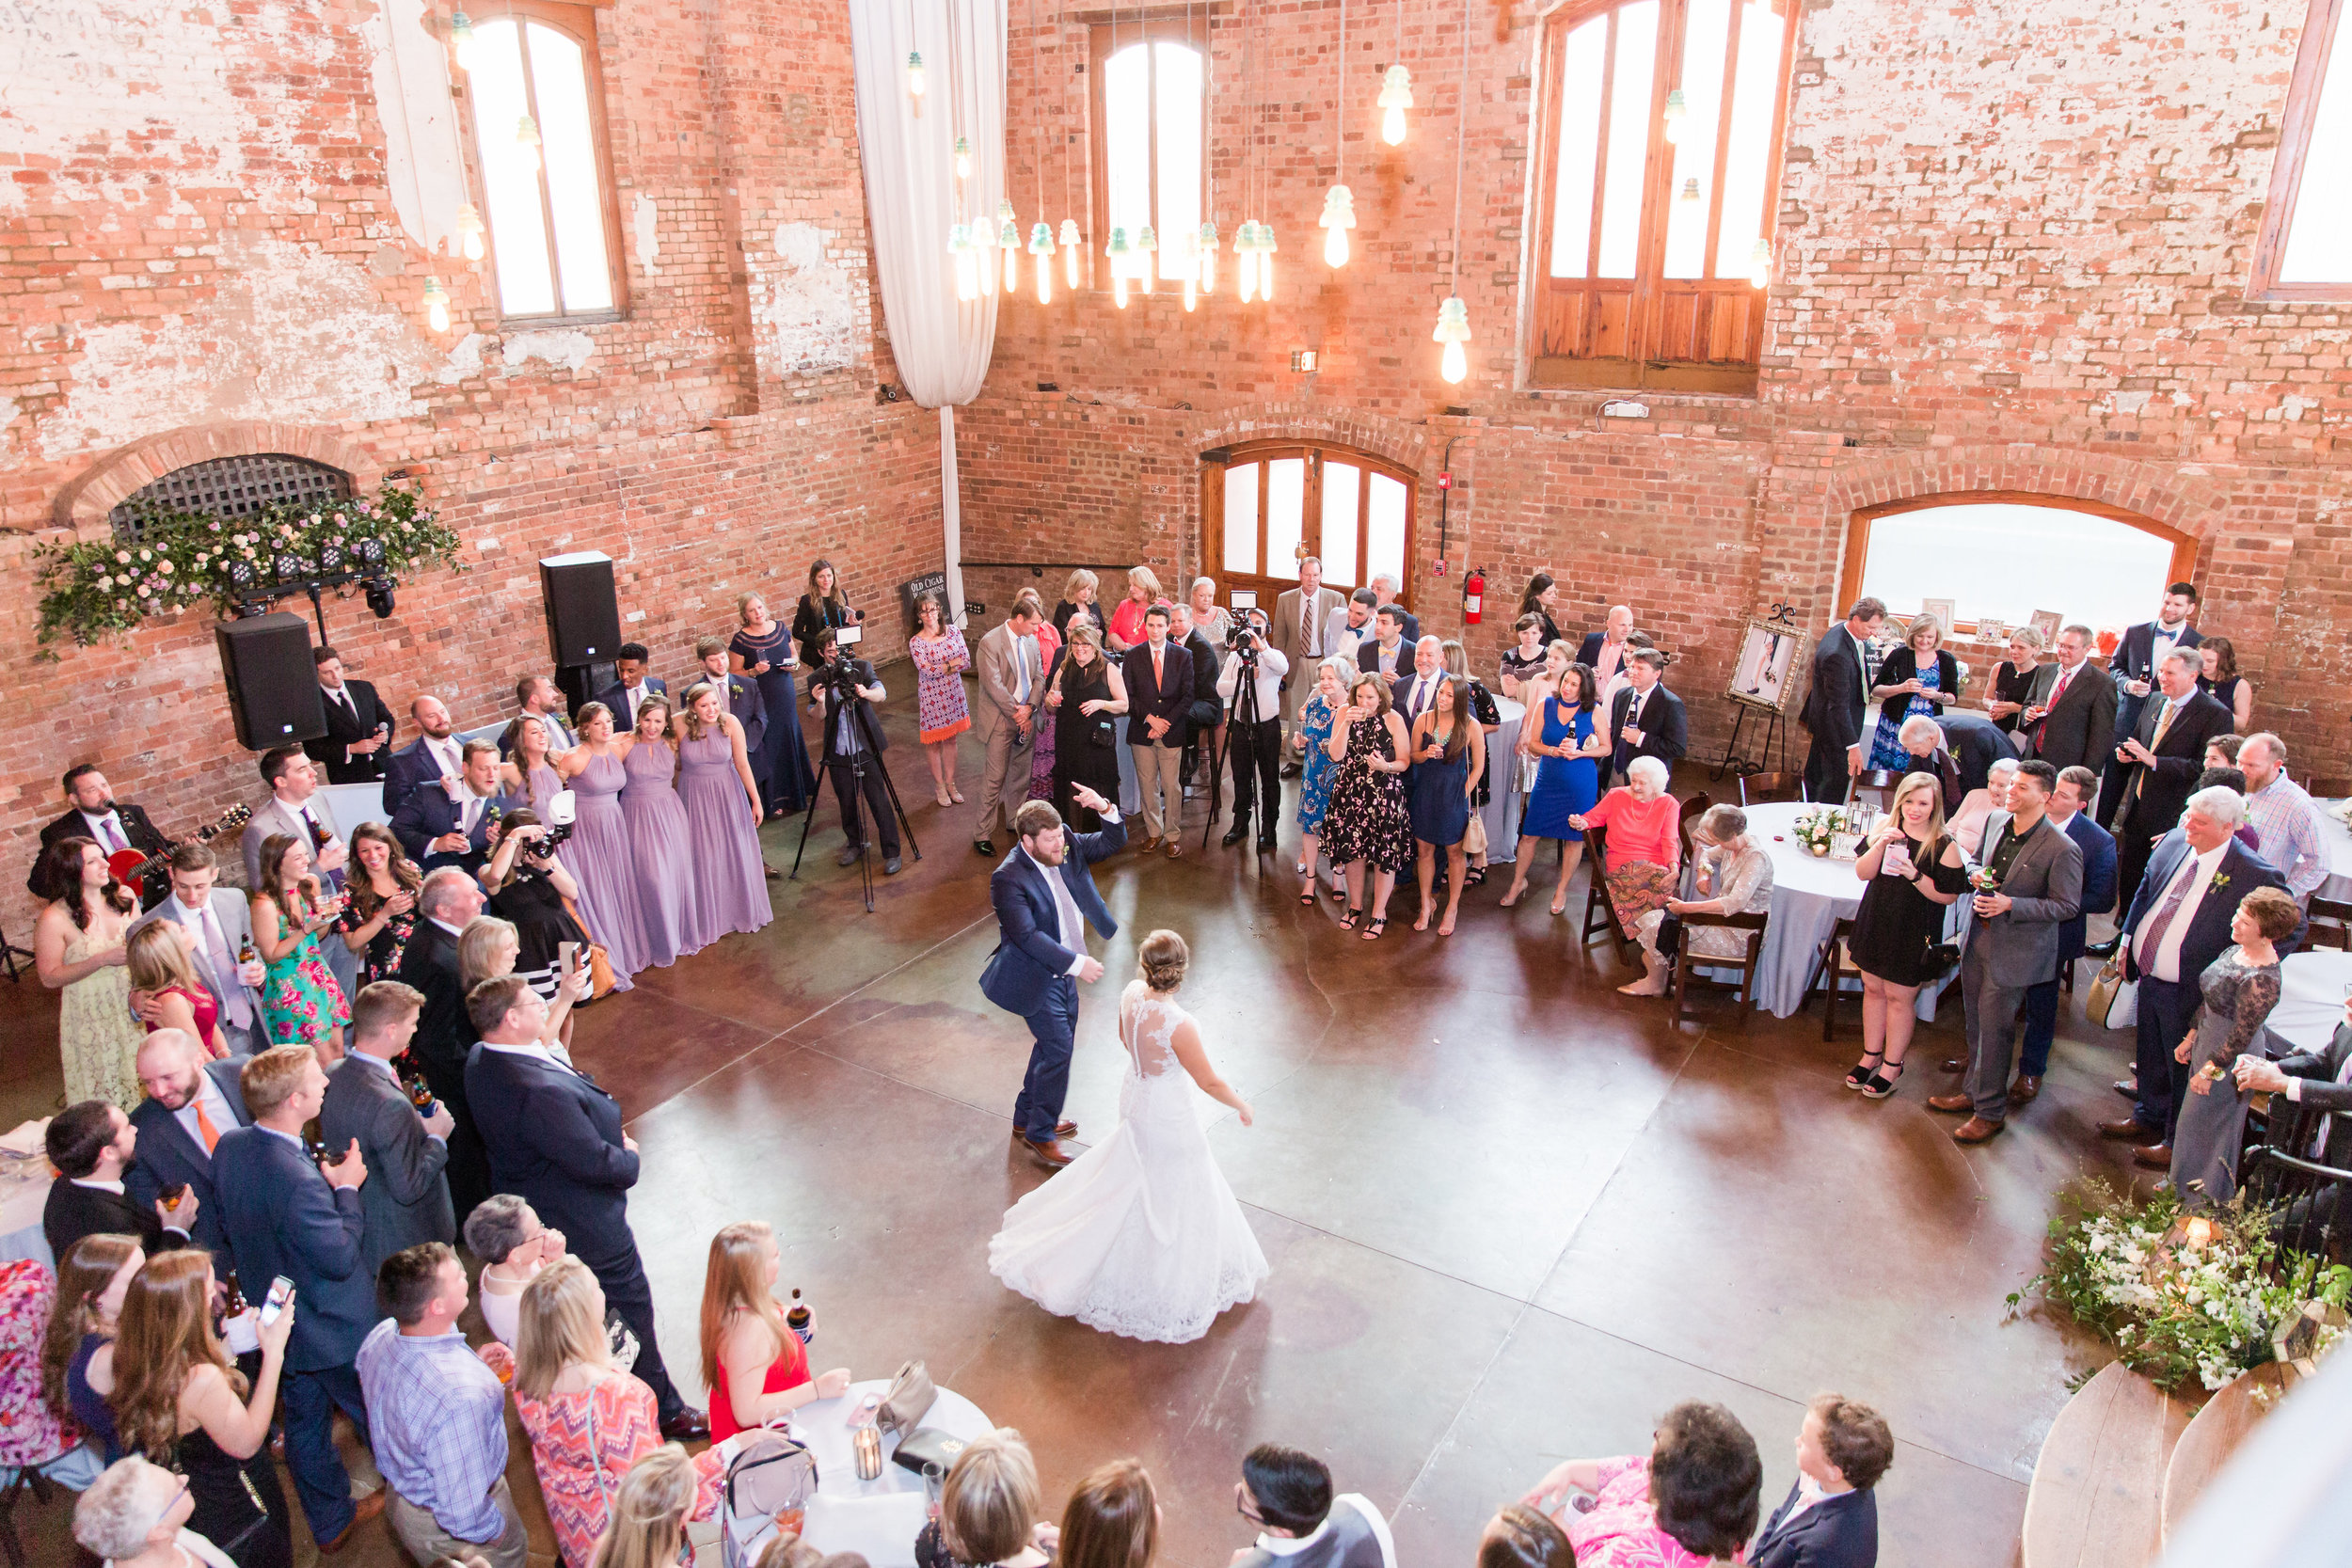 Wedding-DJ-Greenville-SC-Old Cigar-Warehouse-Megan-and-Ben107.jpg